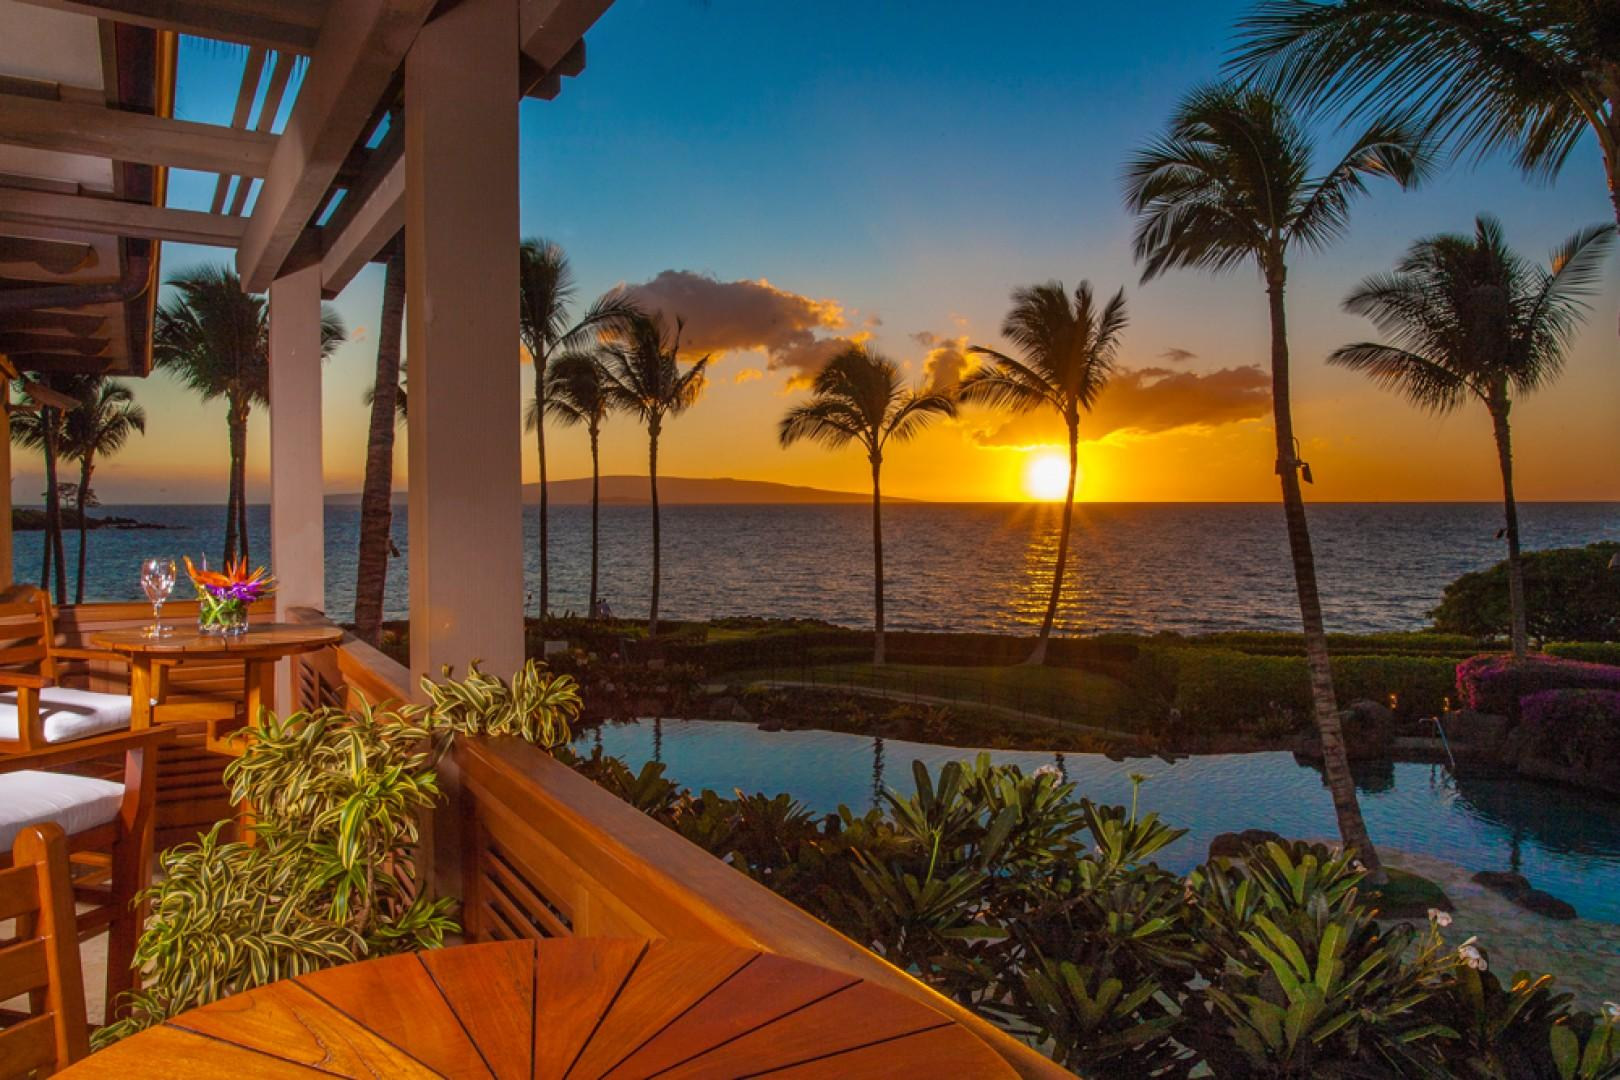 A Pacific Ocean Sunset View Looking Directly Over The Adult Pool and Hot Tub From the Private Veranda Off the A201 Royal Ilima Master Bath